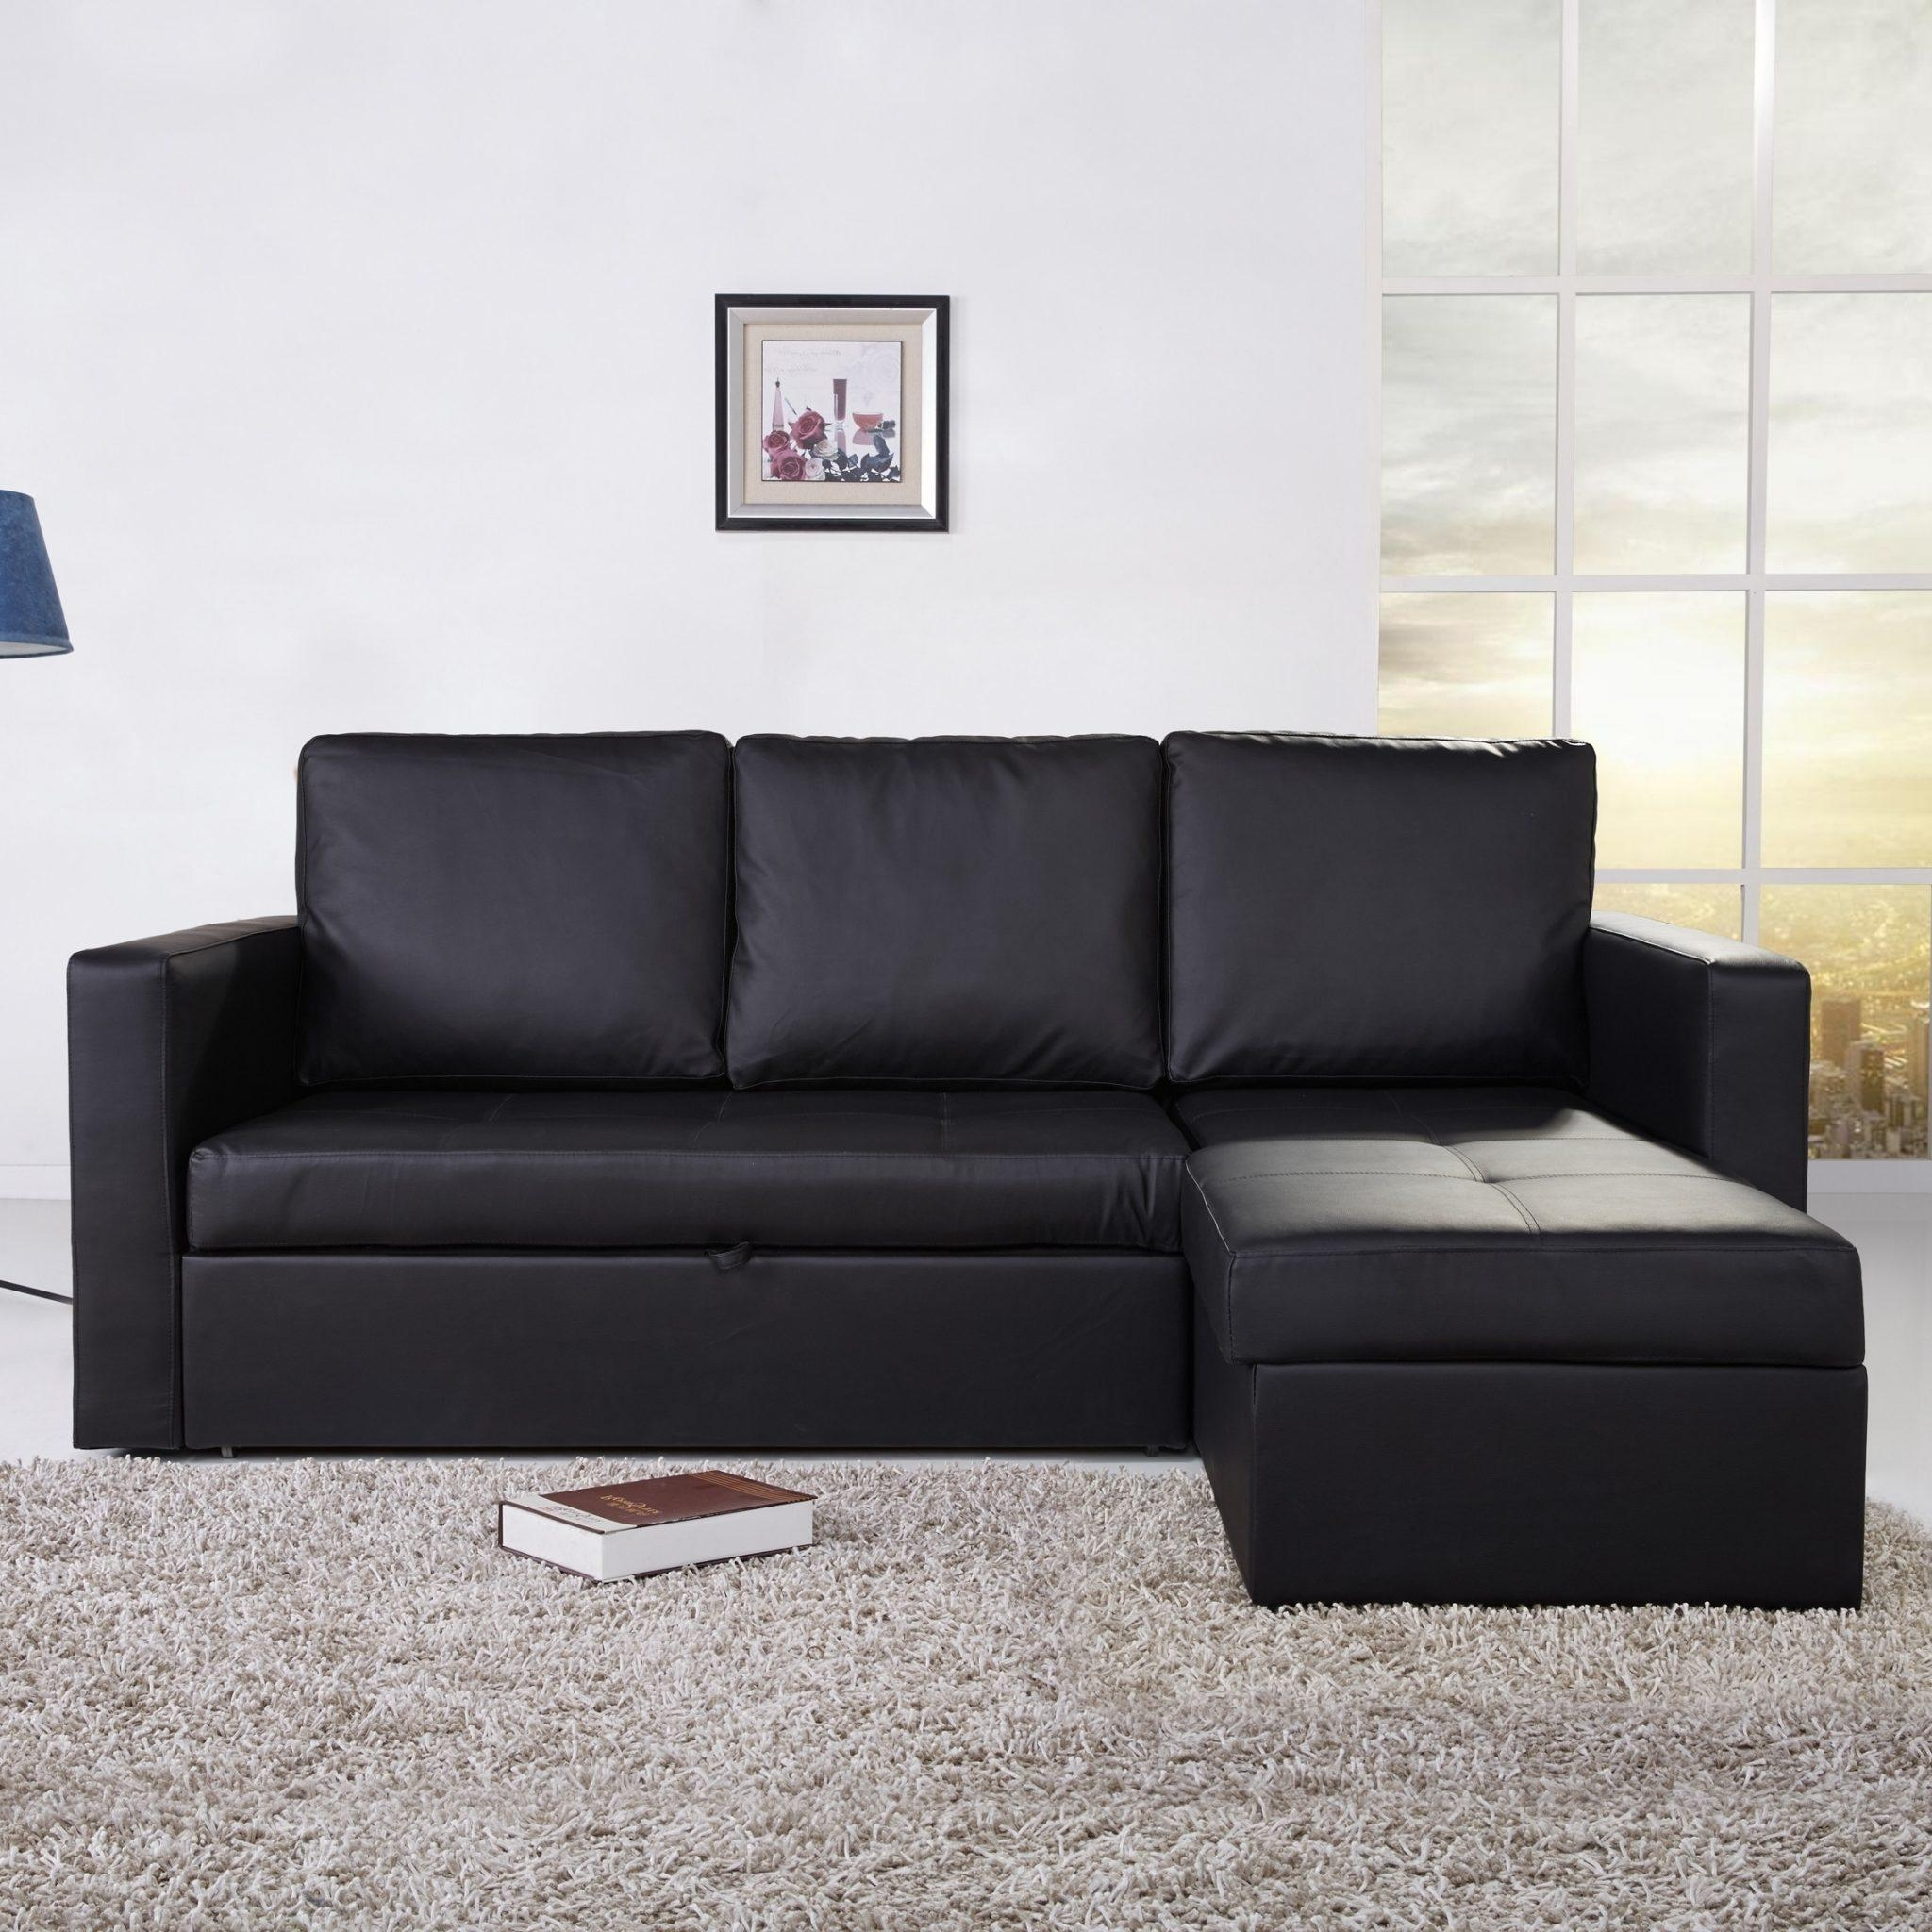 Furniture & Rug: Fancy Sectional Sleeper Sofa For Best Home Pertaining To King Size Sleeper Sofa Sectional (View 13 of 20)